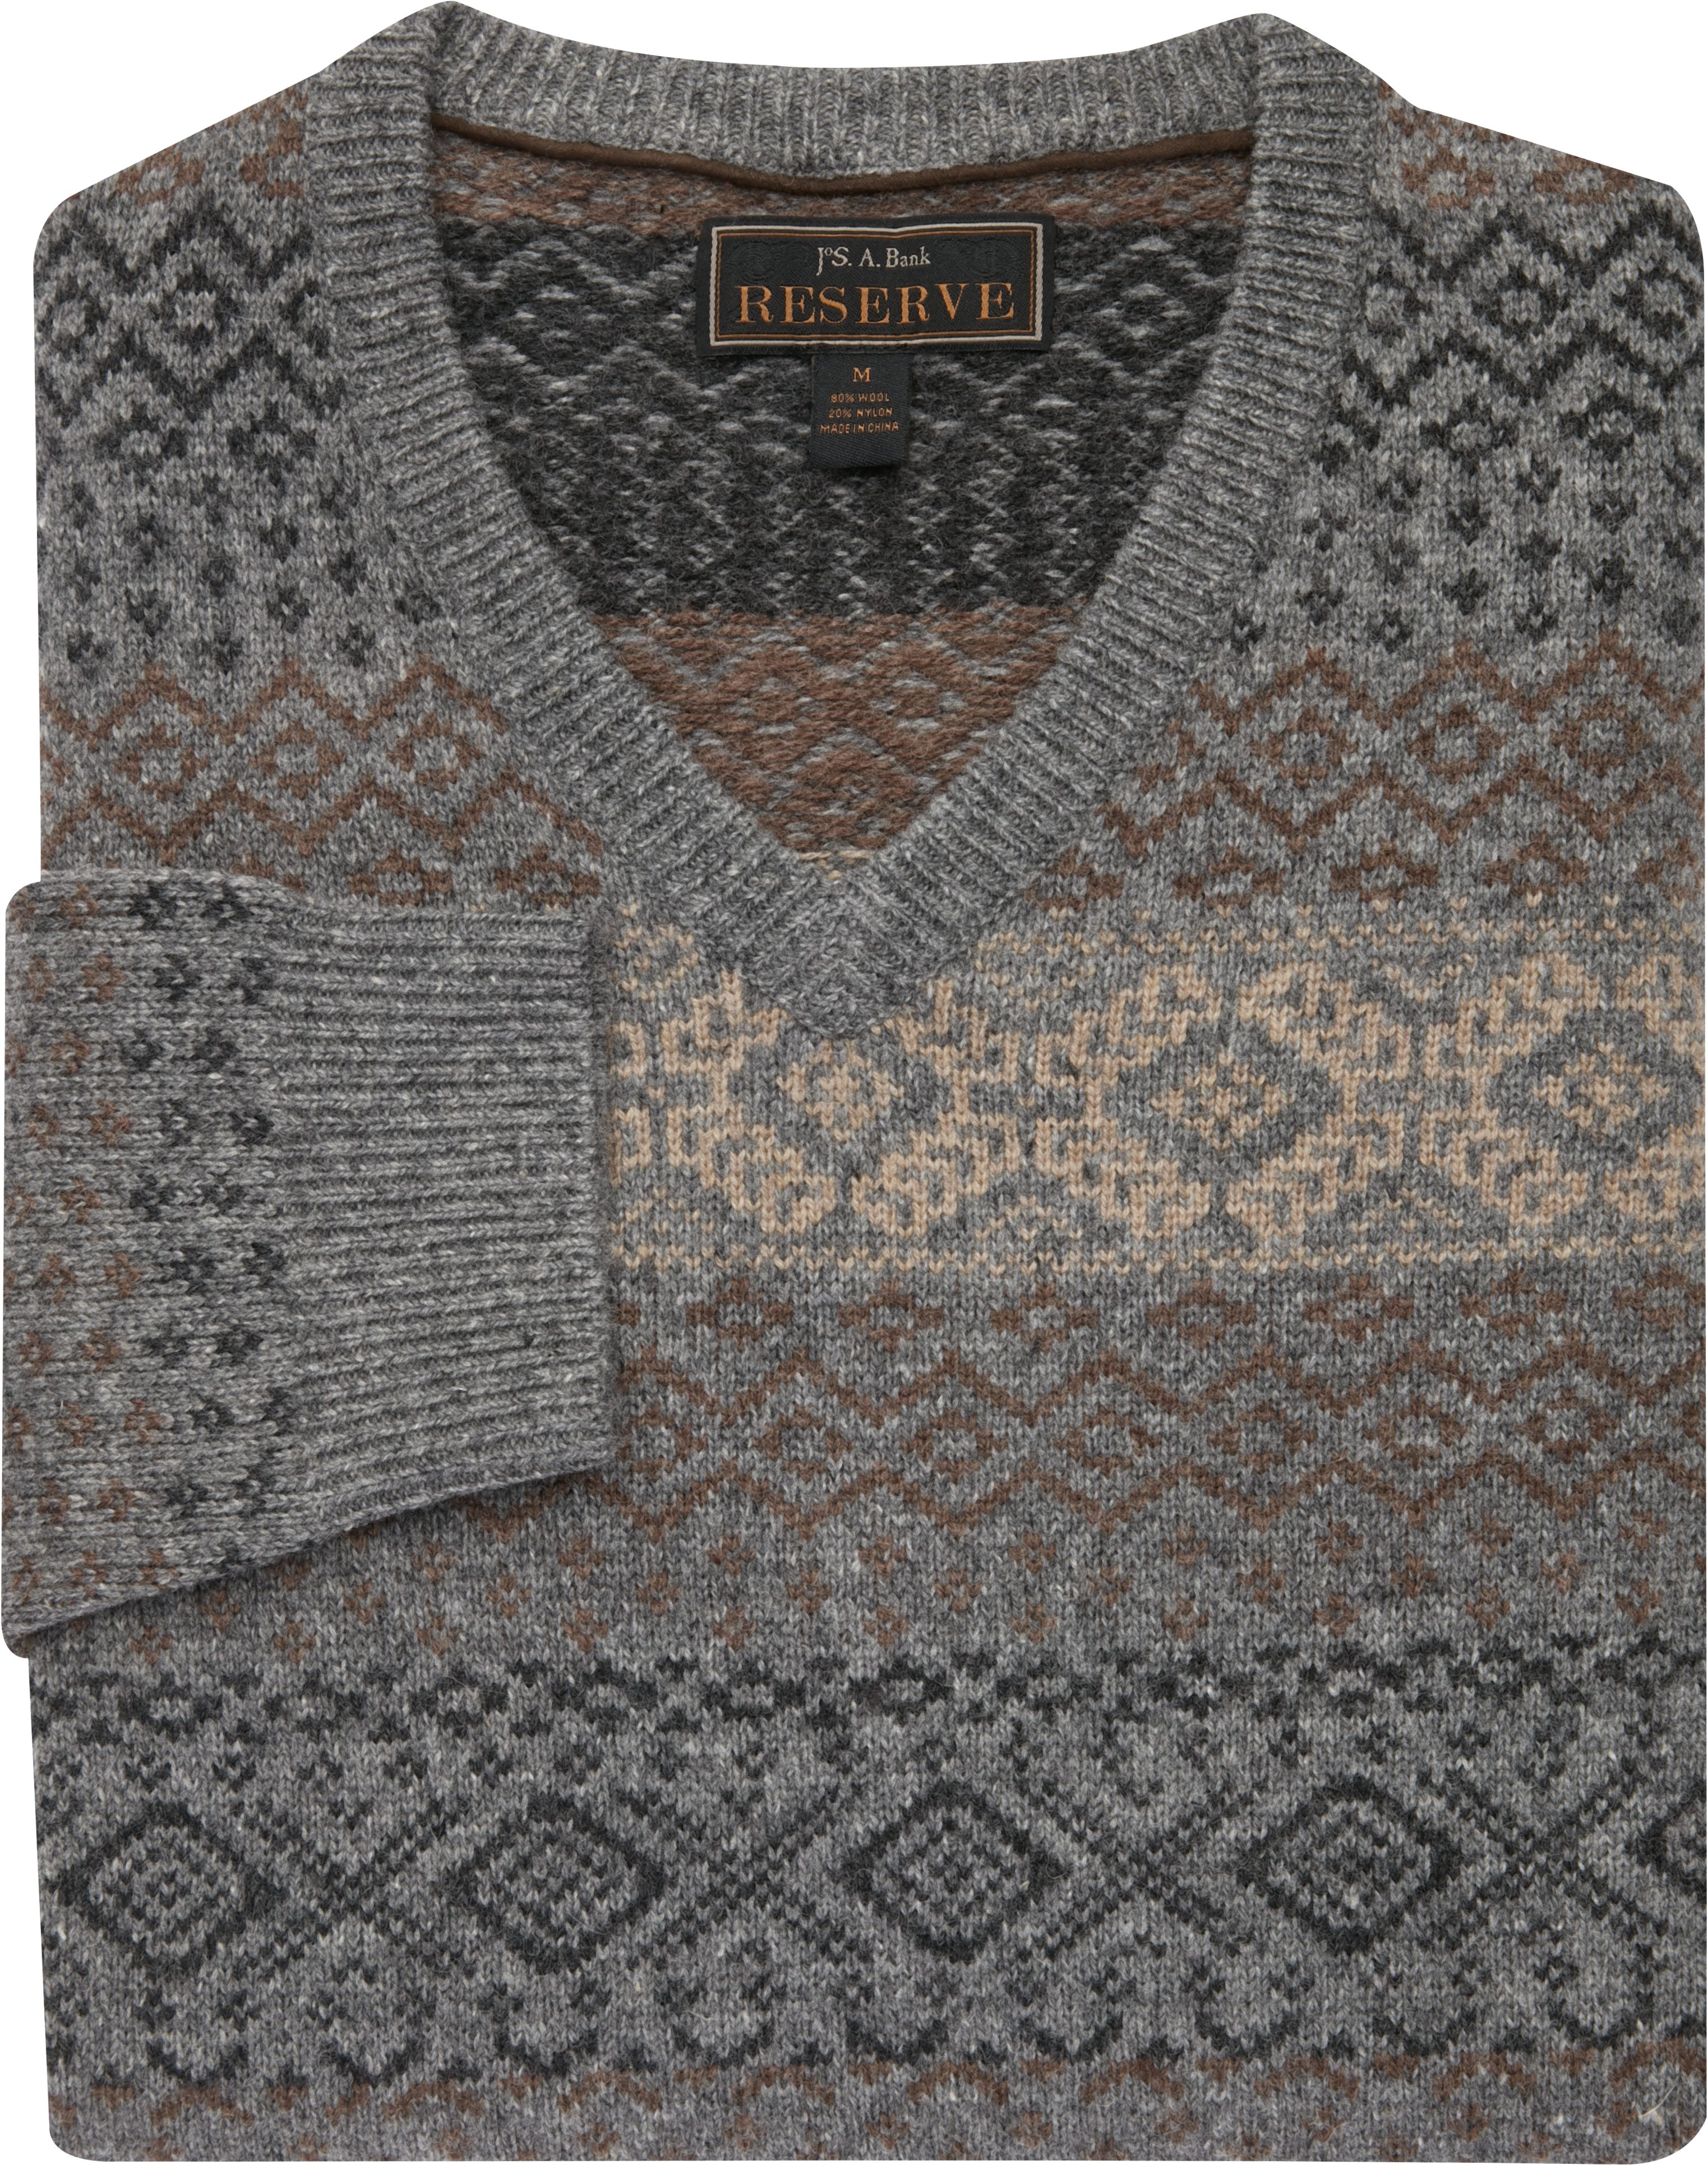 Reserve Collection Wool Blend Fair Isle Sweater CLEARANCE